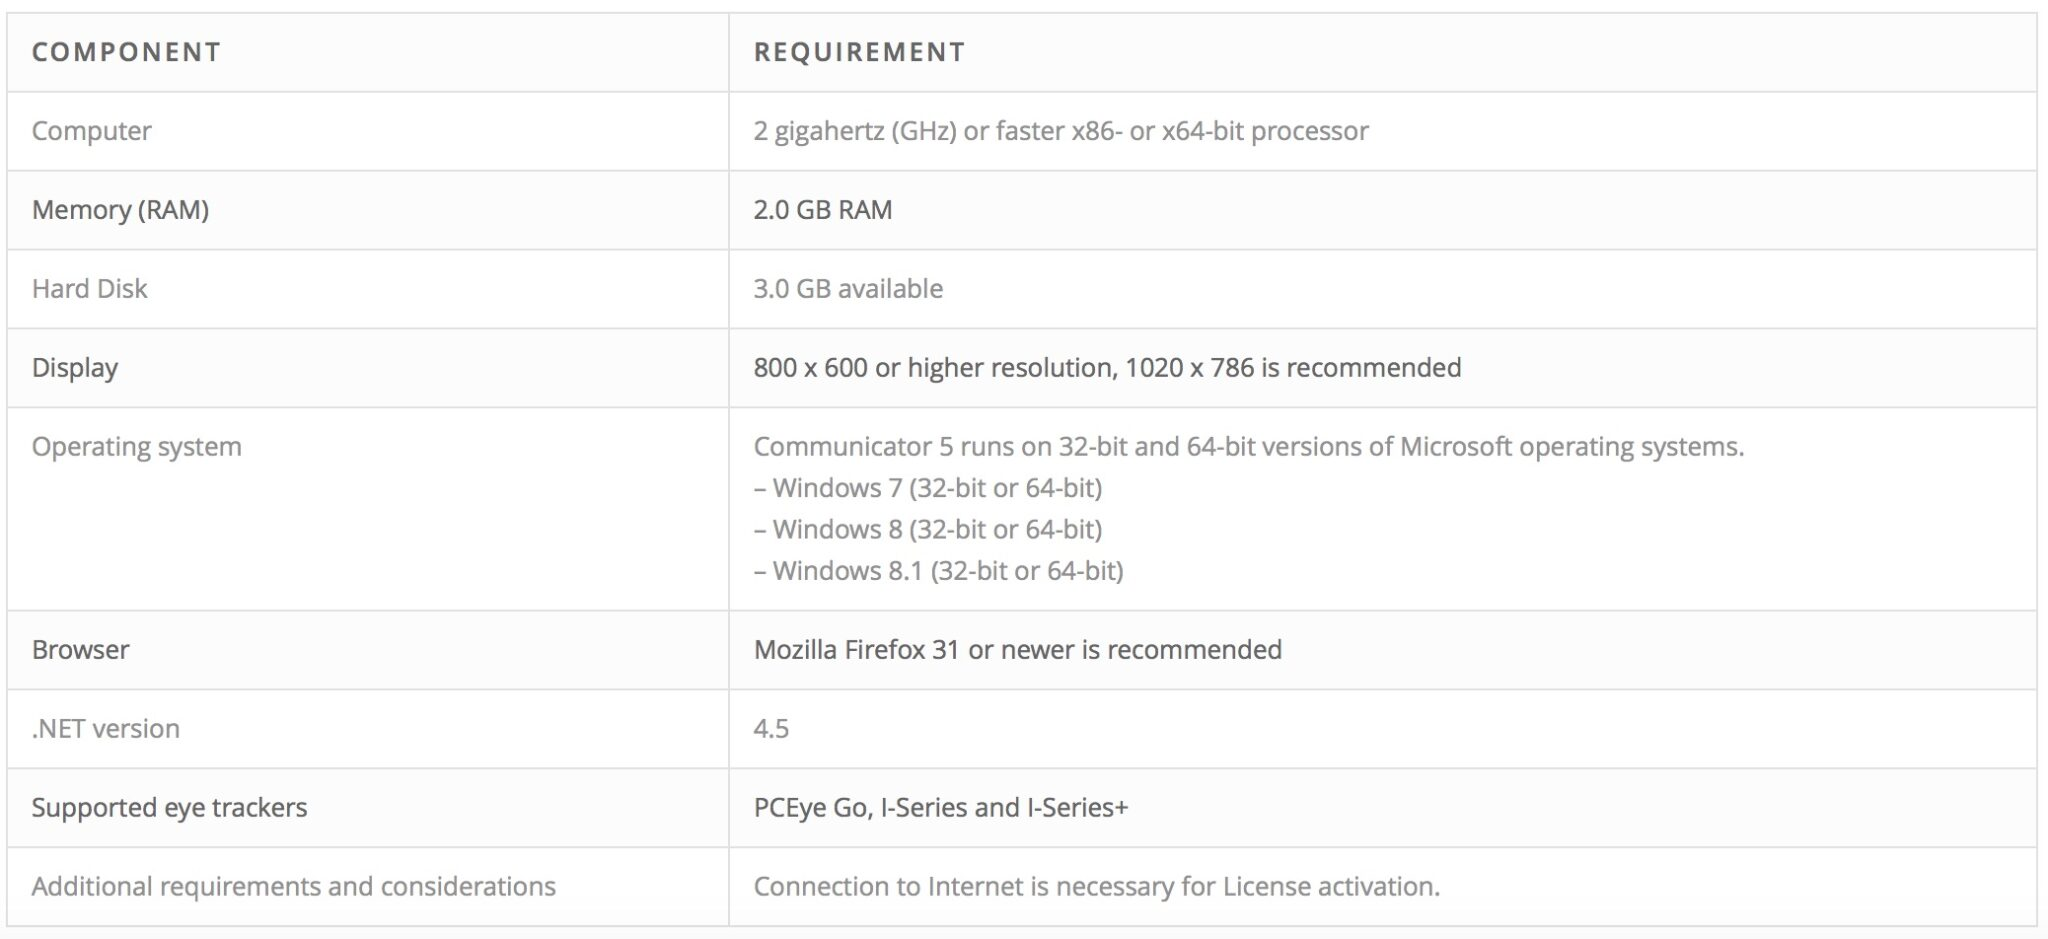 Communicator 5 Specifications